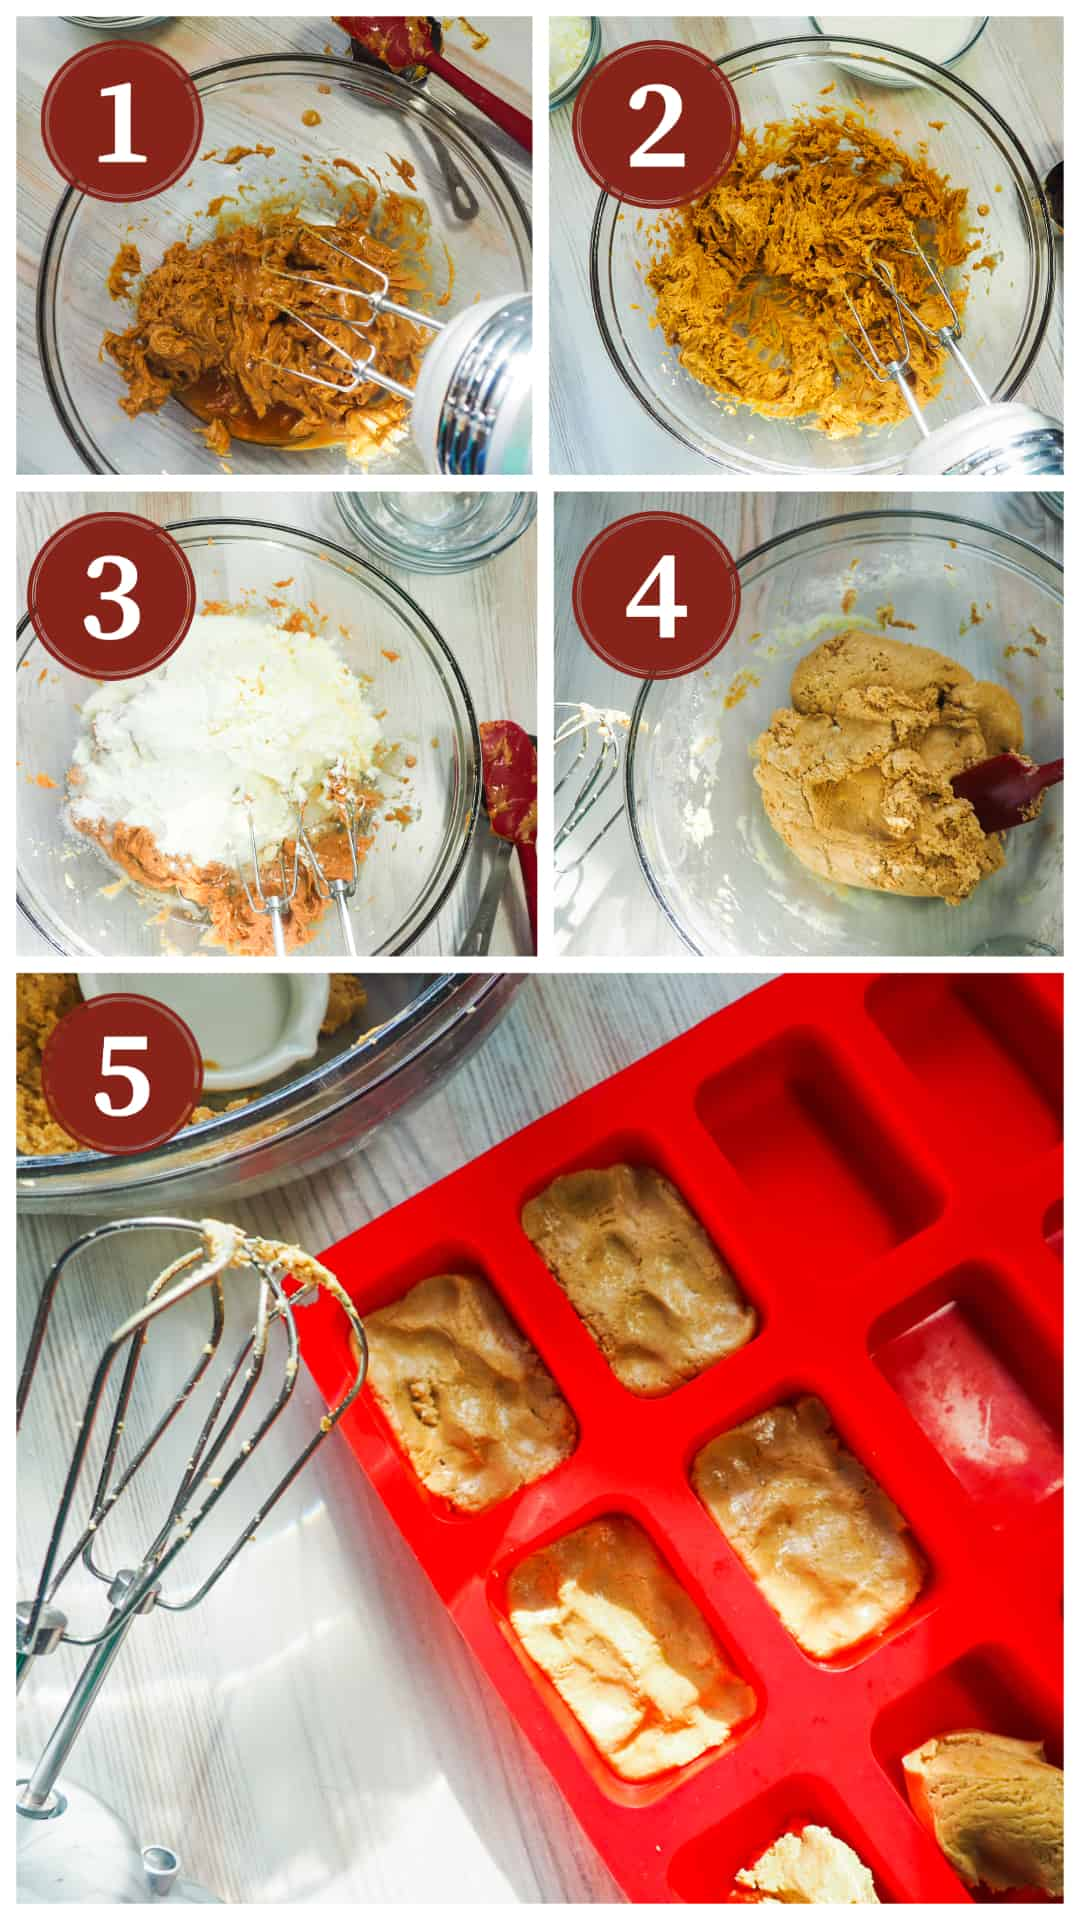 A collage of images showing the process of making peanut butter perfect bars using a glass bowl and a hand mixer.